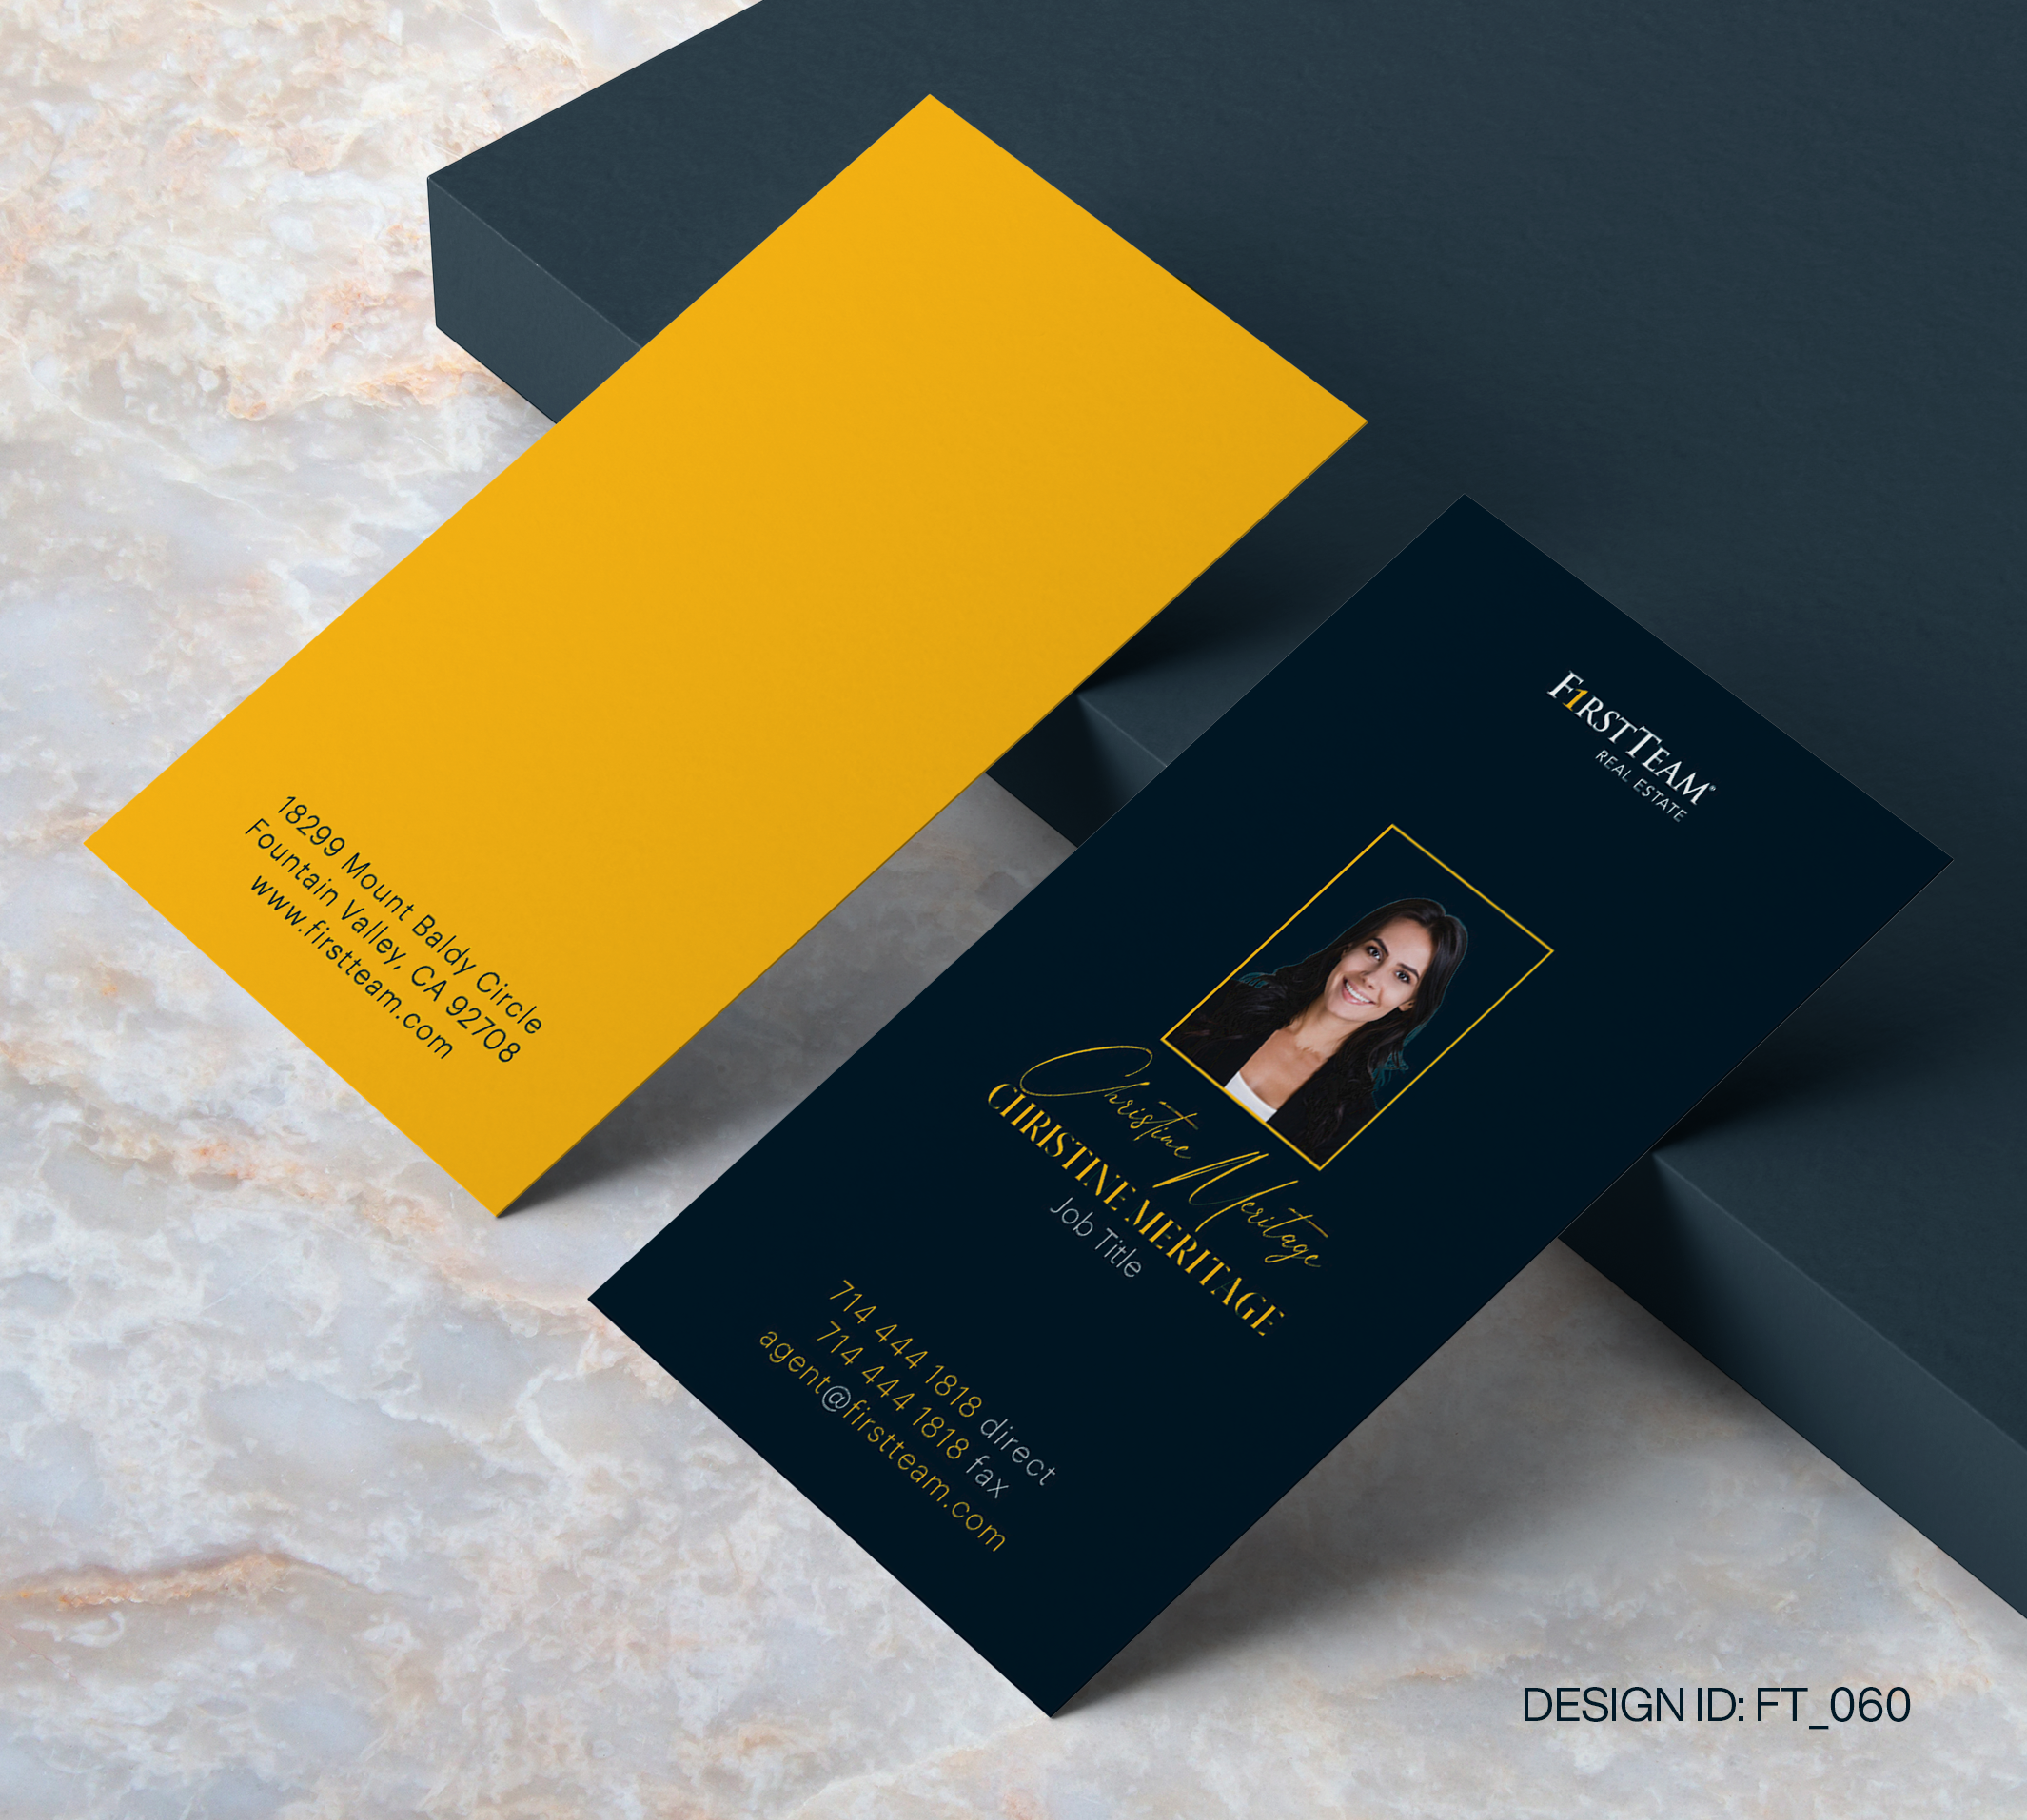 First Team Business Card Design  060